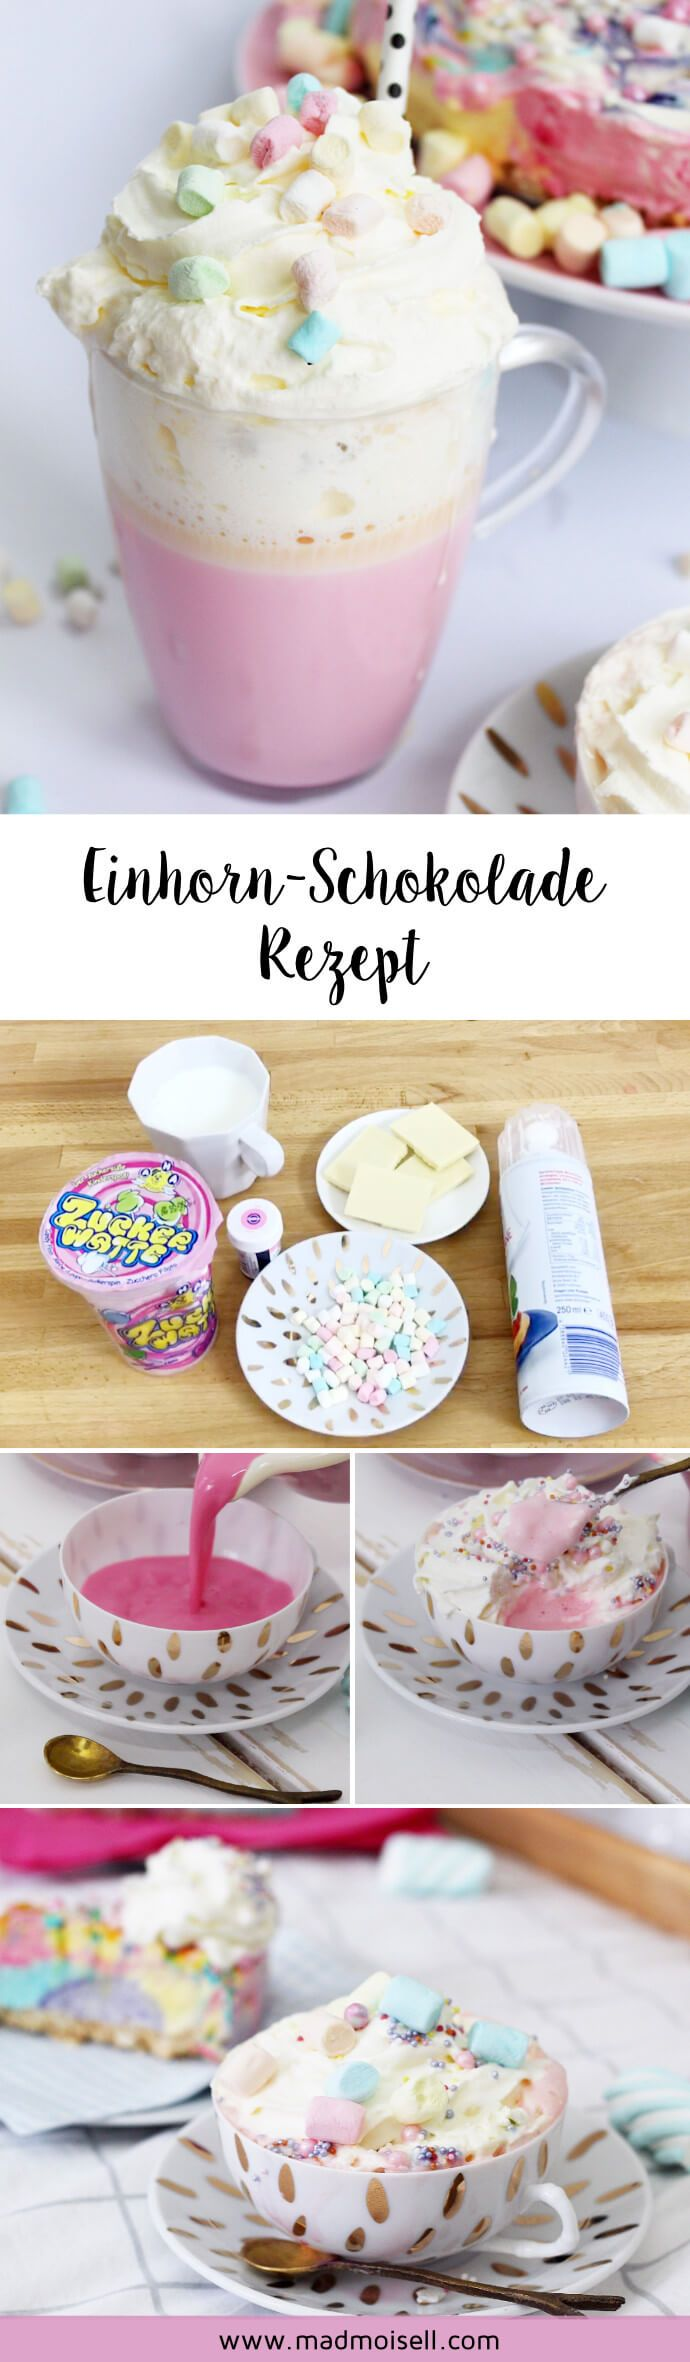 Make hot unicorn chocolate yourself: Simple party recipe!  – Madmoisell DIY Projekte⎪ Basteln & Selbermachen